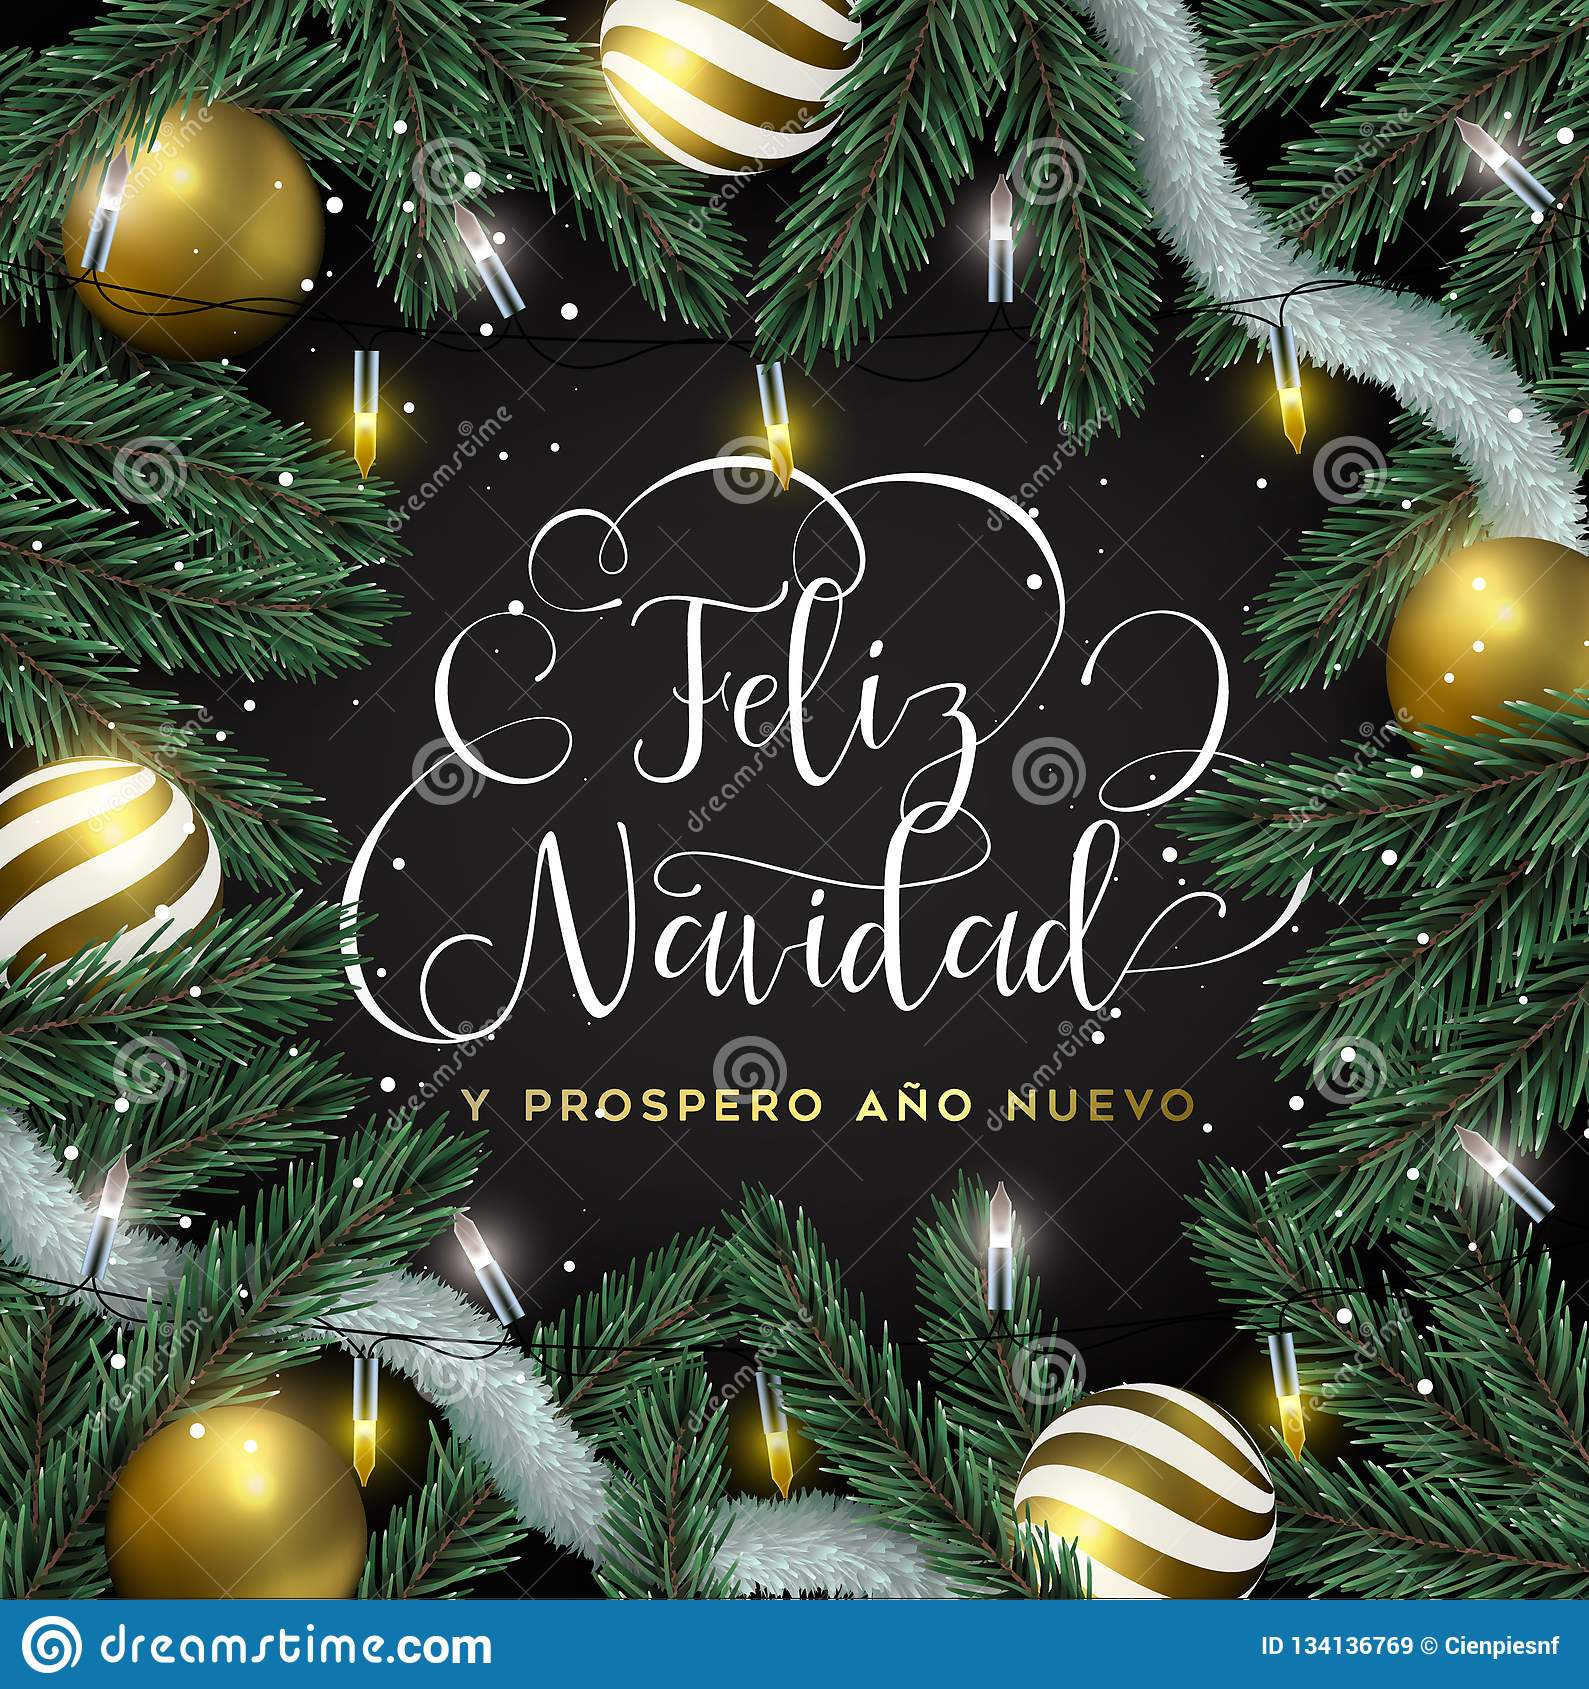 Gold Christmas Tree Ornament Card In Spanish Stock Vector ...